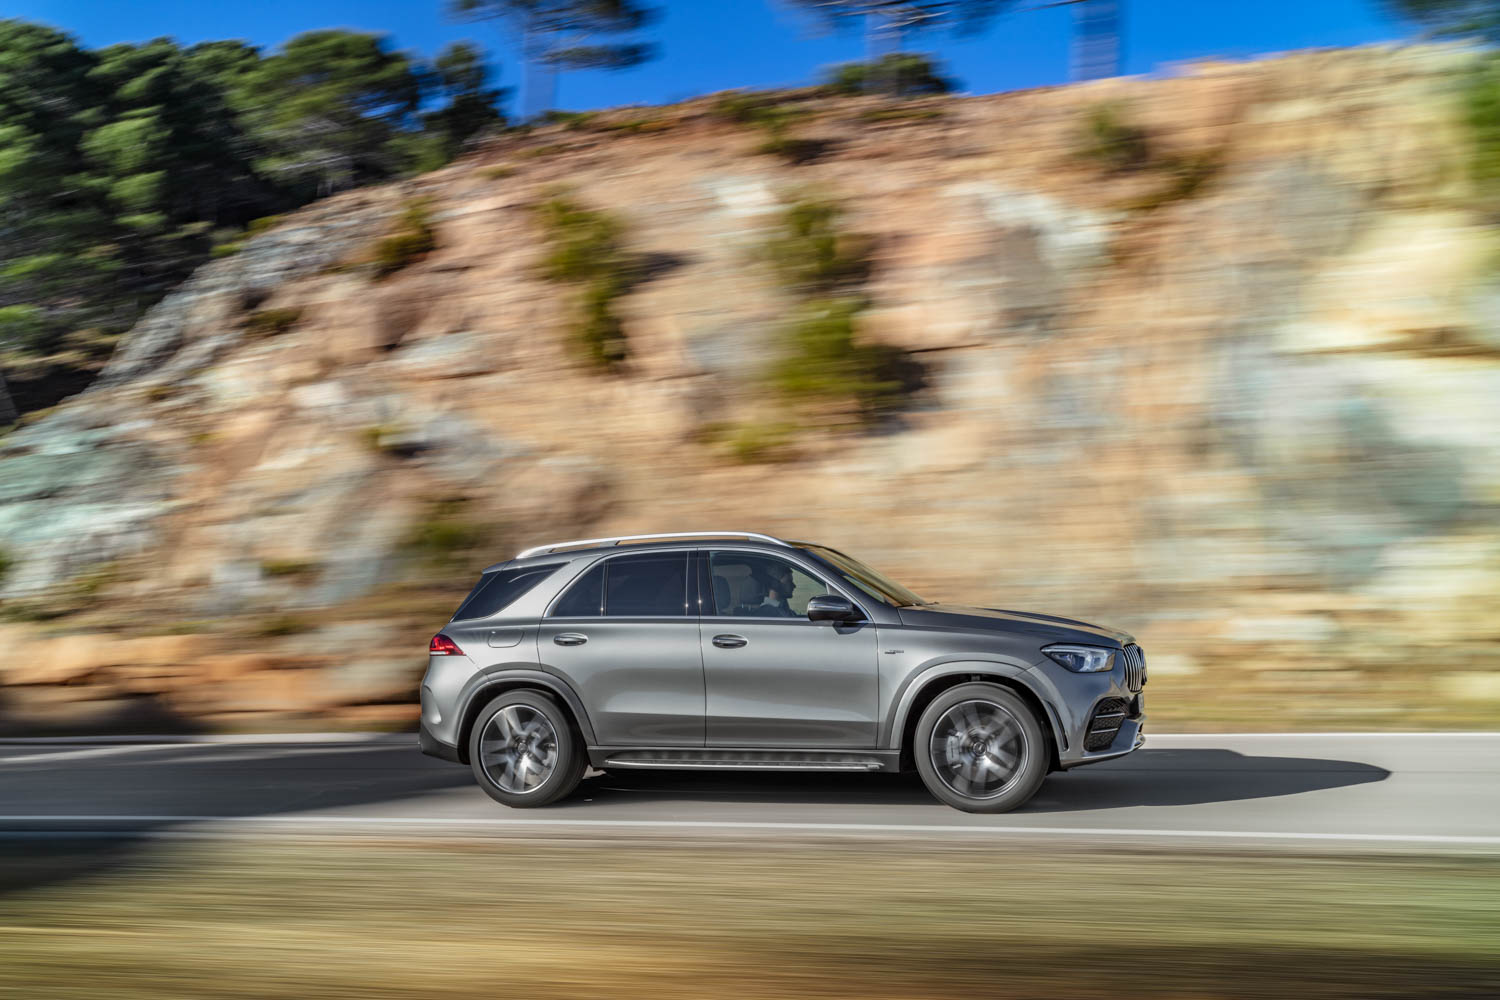 Mercedes-AMG GLE 53 side profile